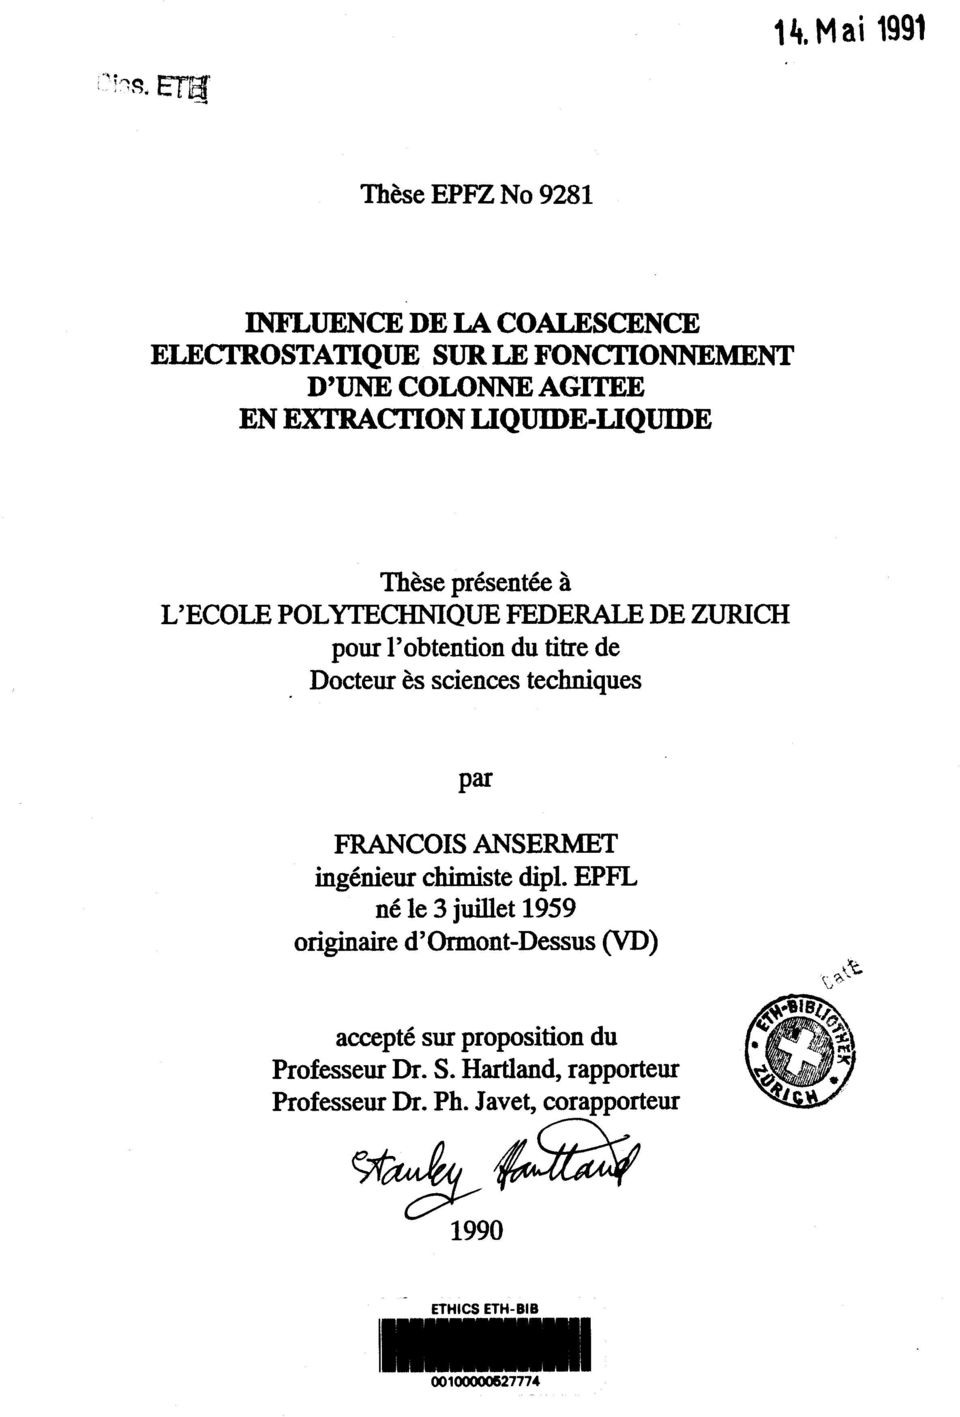 LIQUIDE-LIQUIDE These presentee ä L'ECOLE POLYTECHNIQUE FEDERALE DE ZÜRICH pour Tobtention du titre de Docteur es sciences